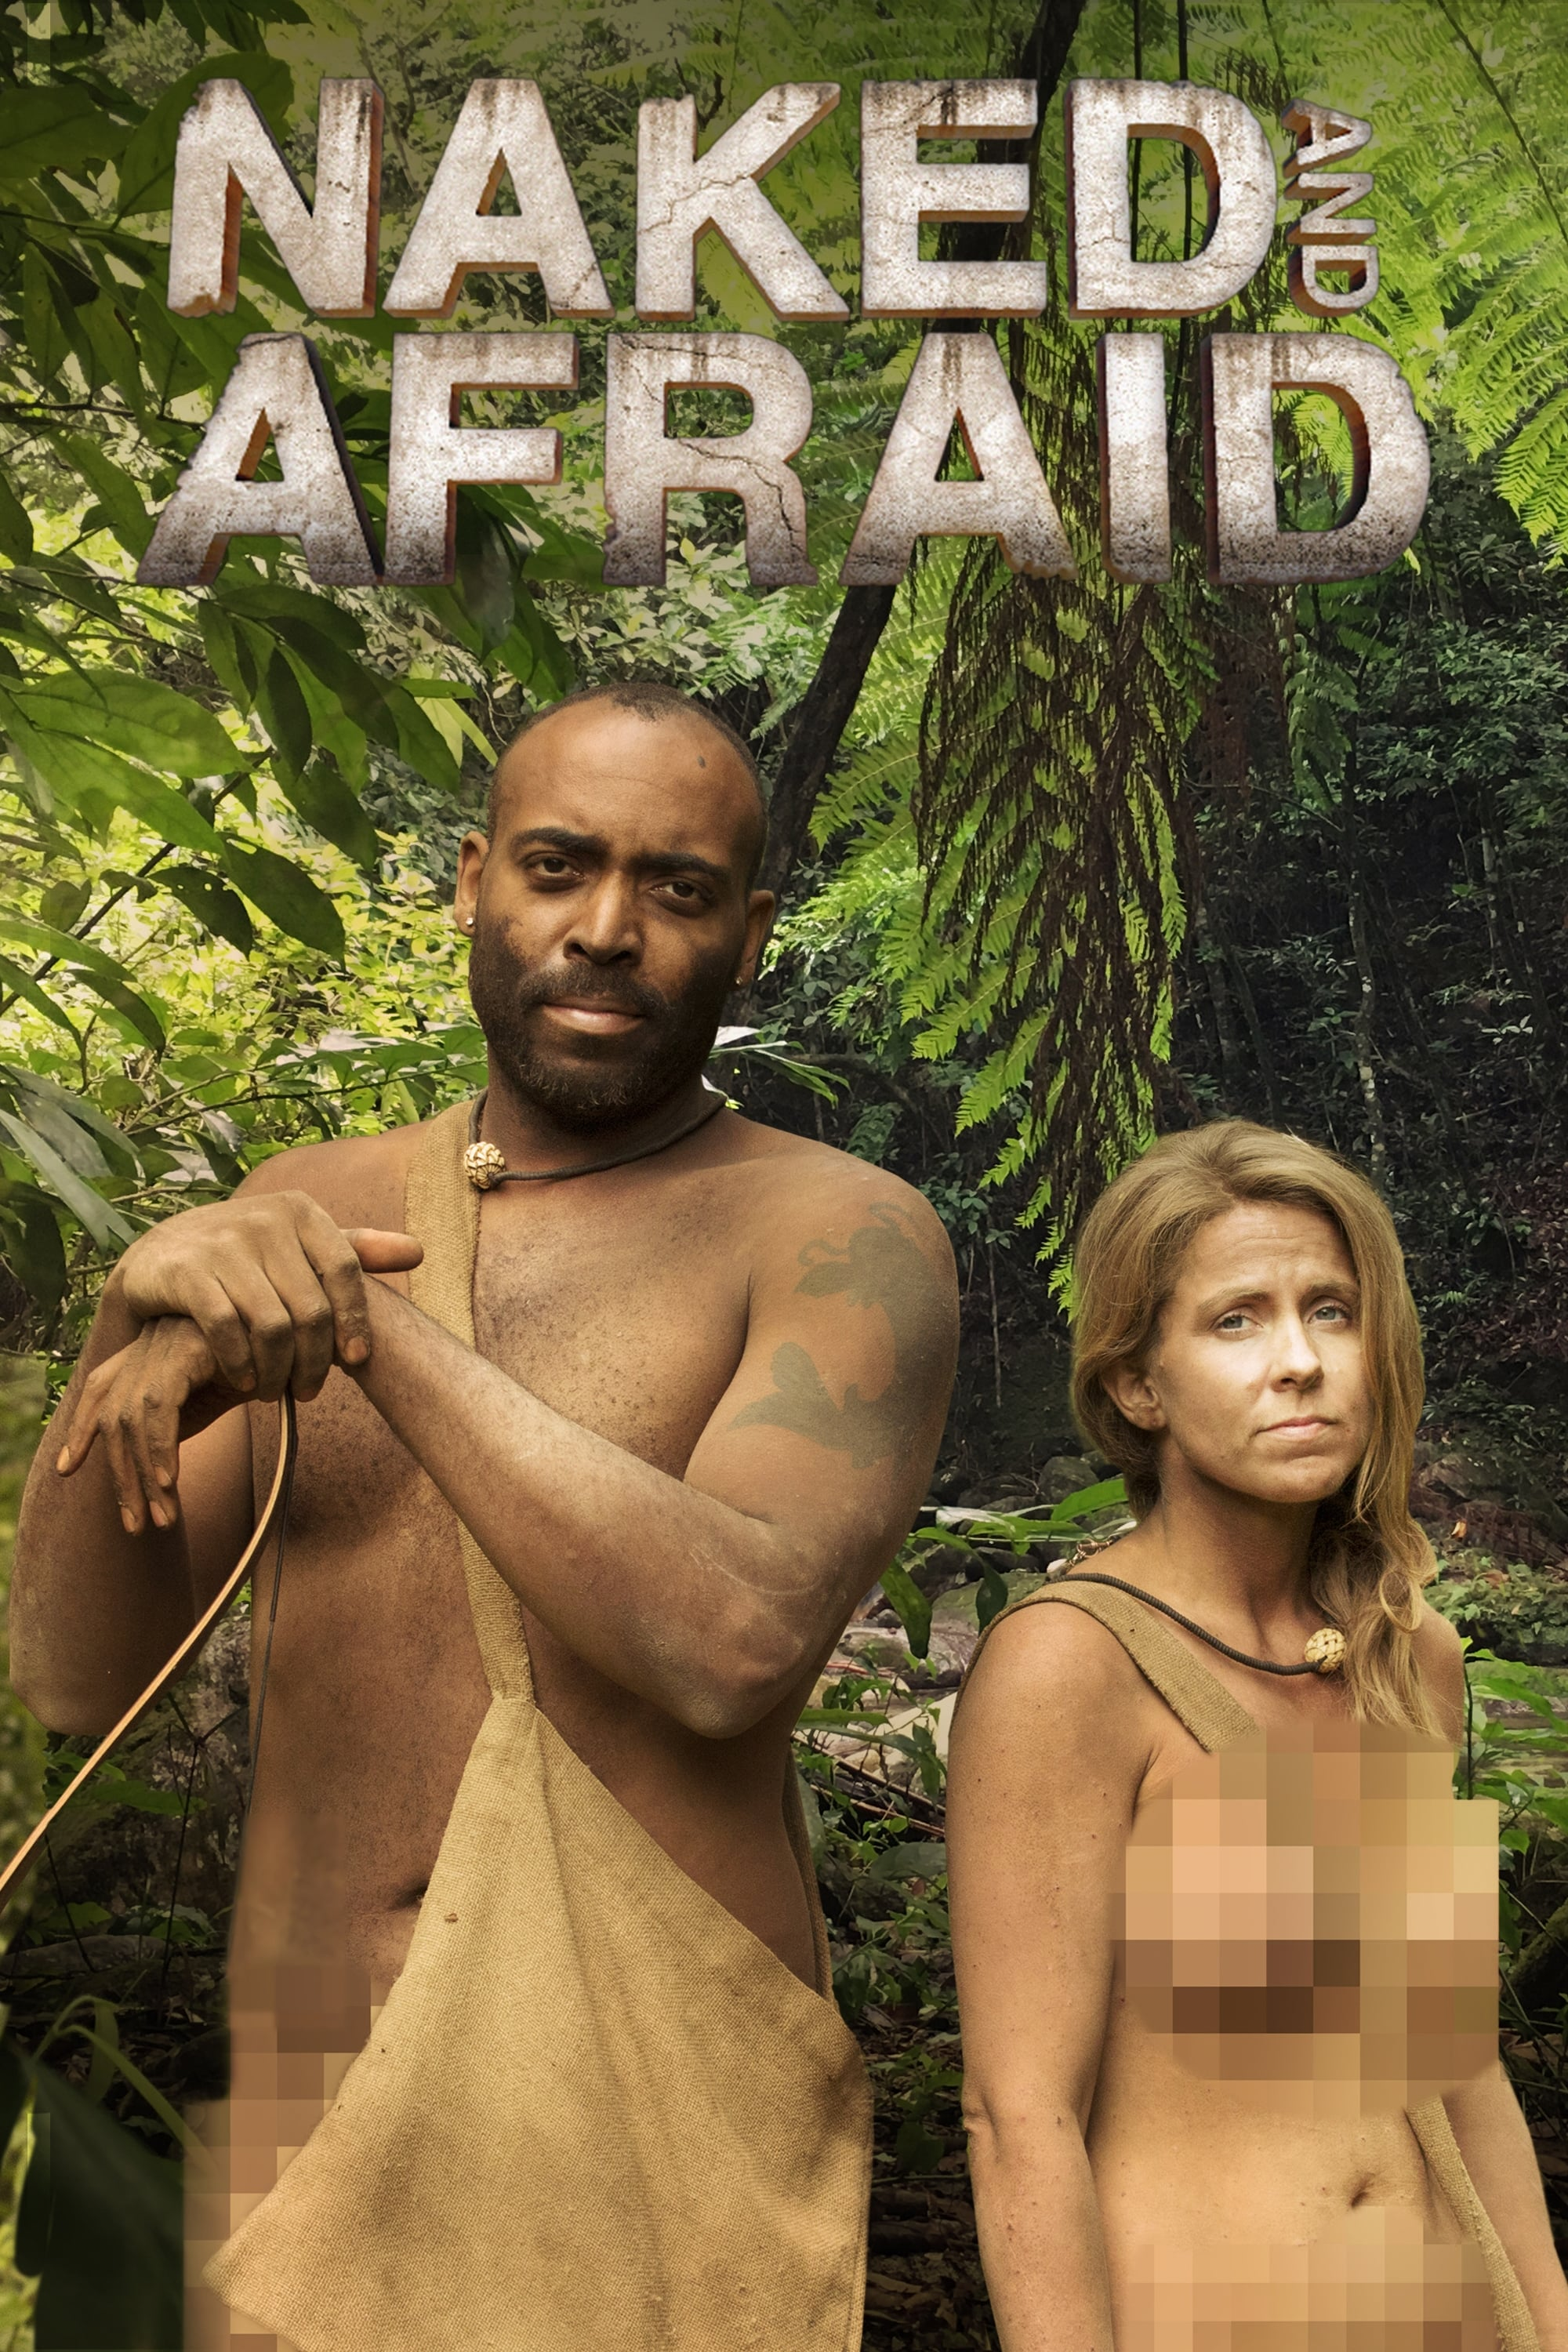 Original Naked And Afraid